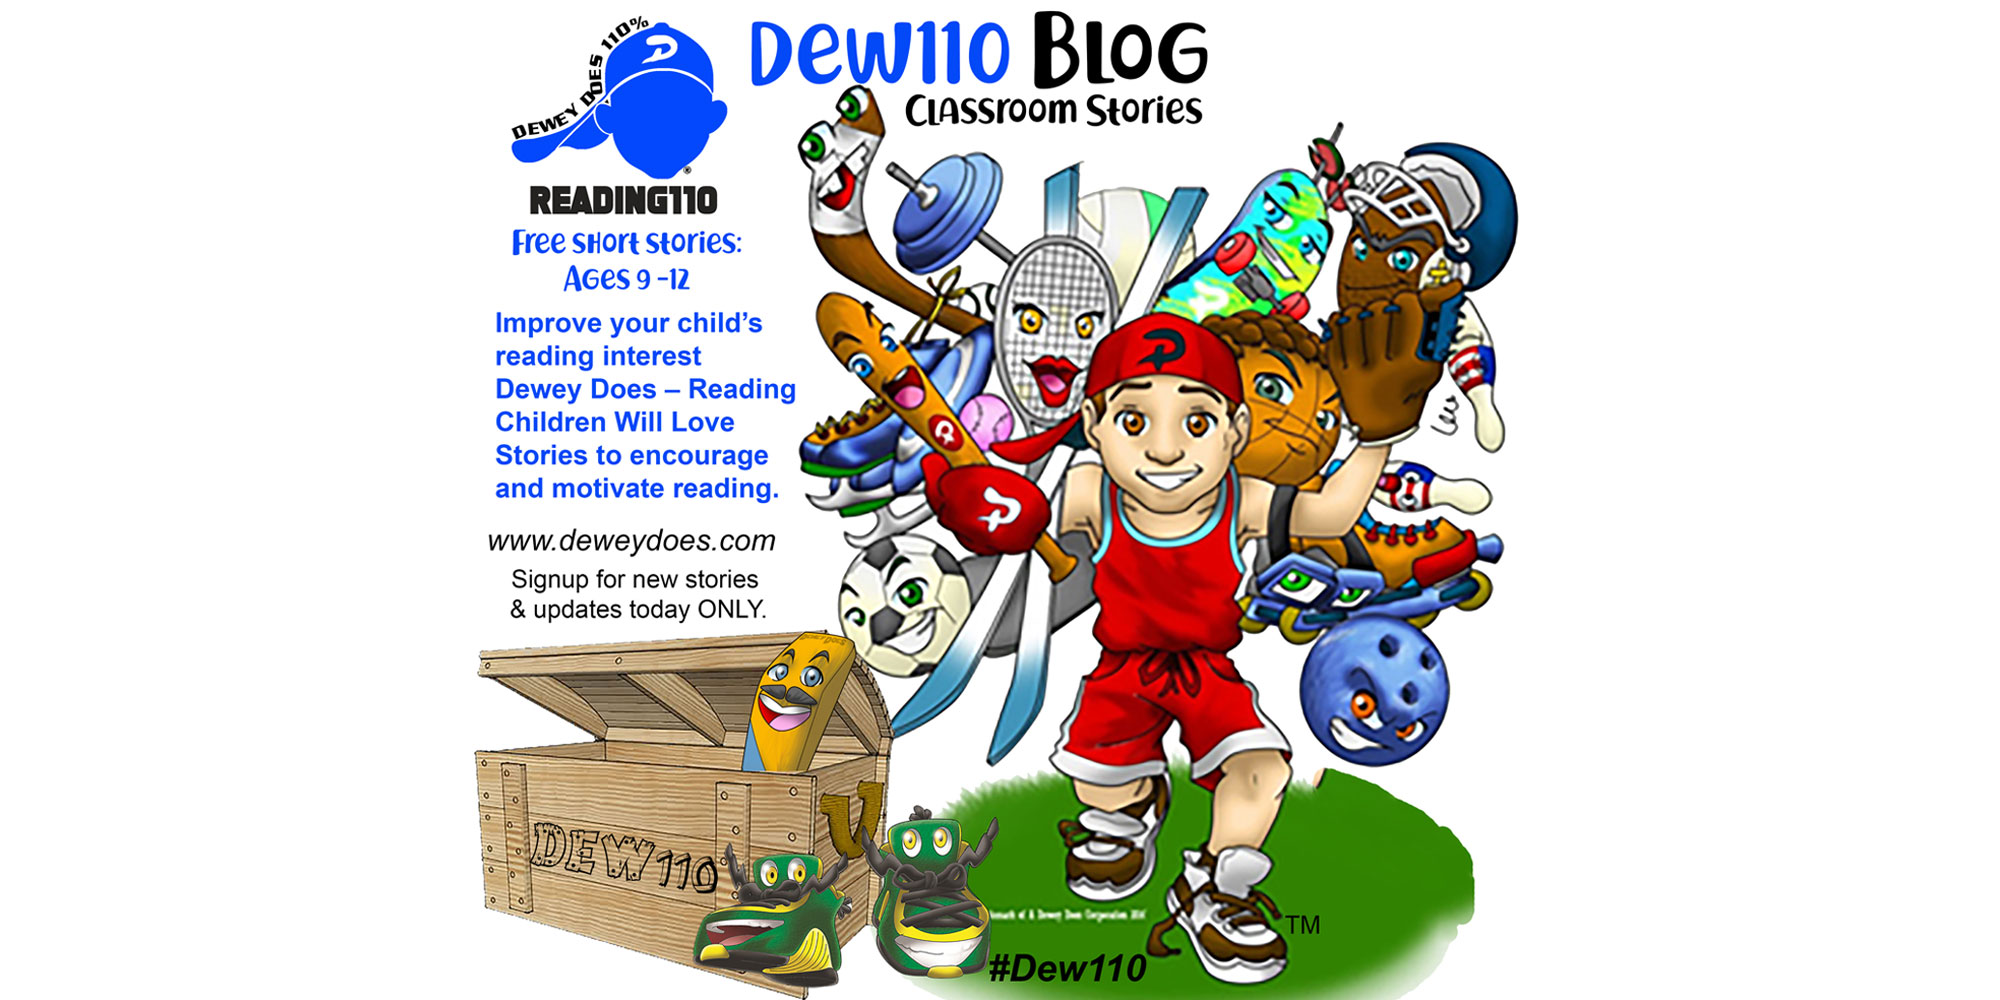 Dewey Does Sports, Health, Fitness & Education Blog - Captain Does